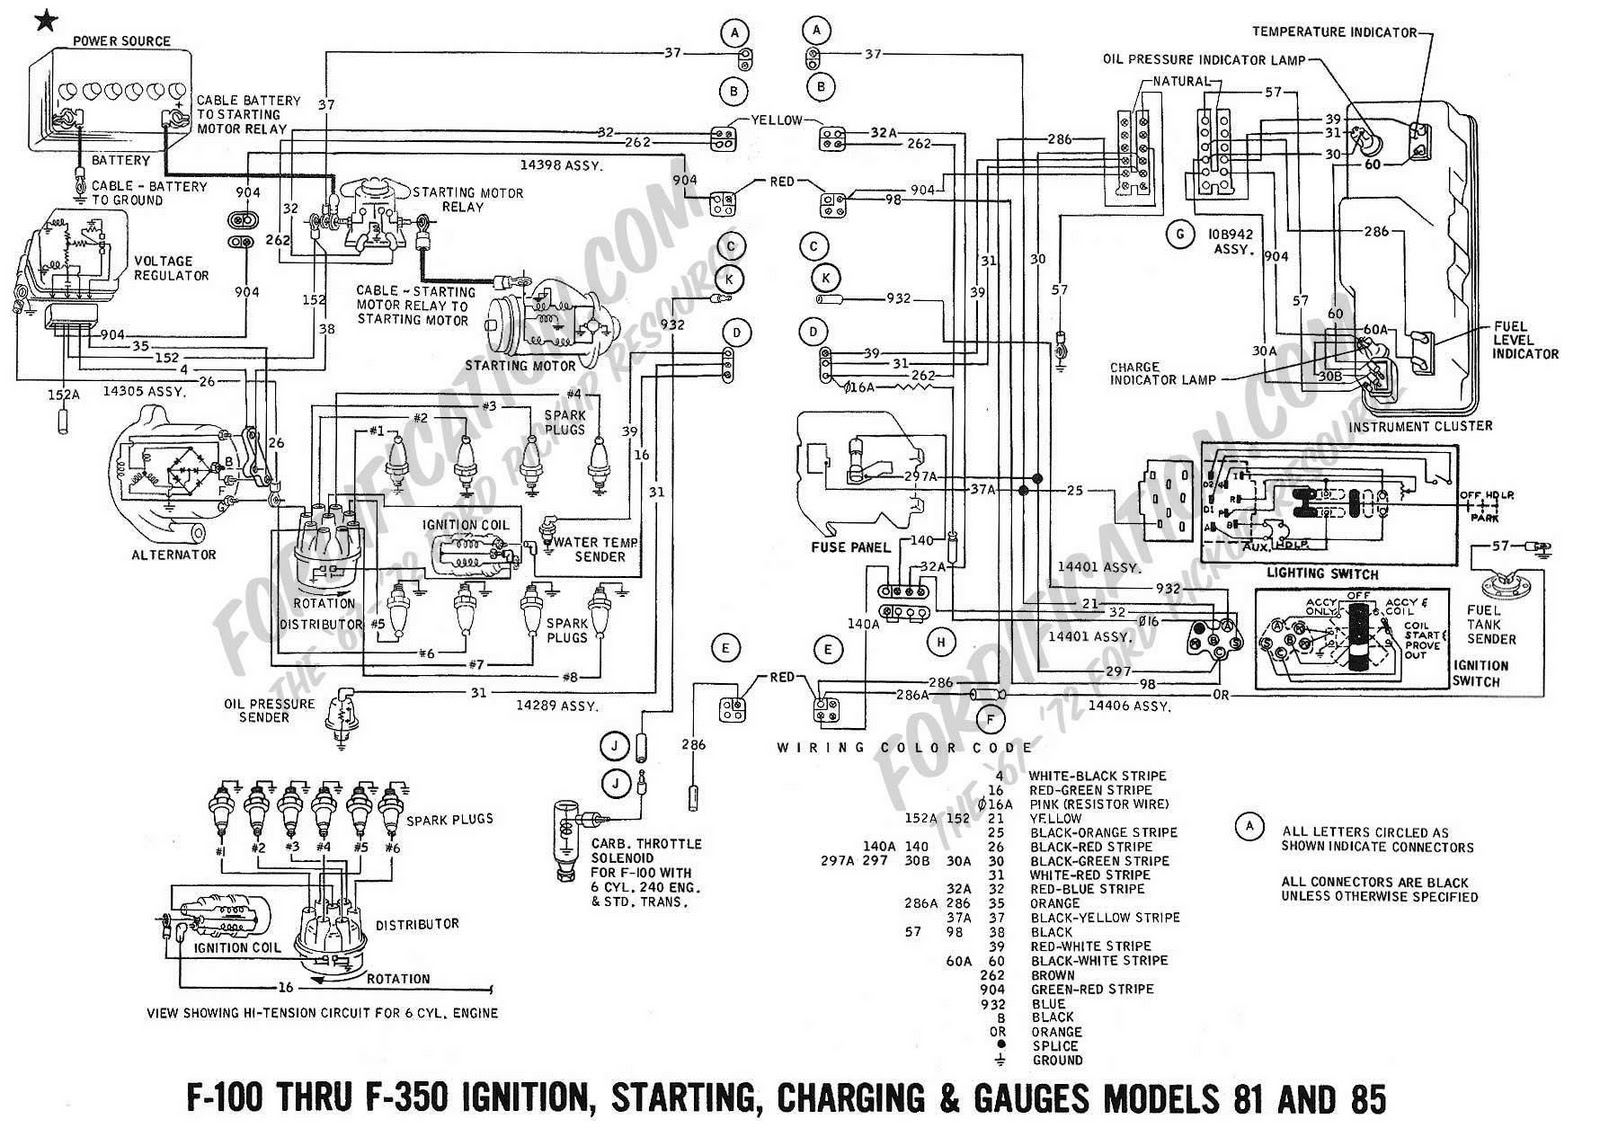 1966 Ford Alternator Wiring Diagram Trusted 1970 Mustang 77 Library 1987